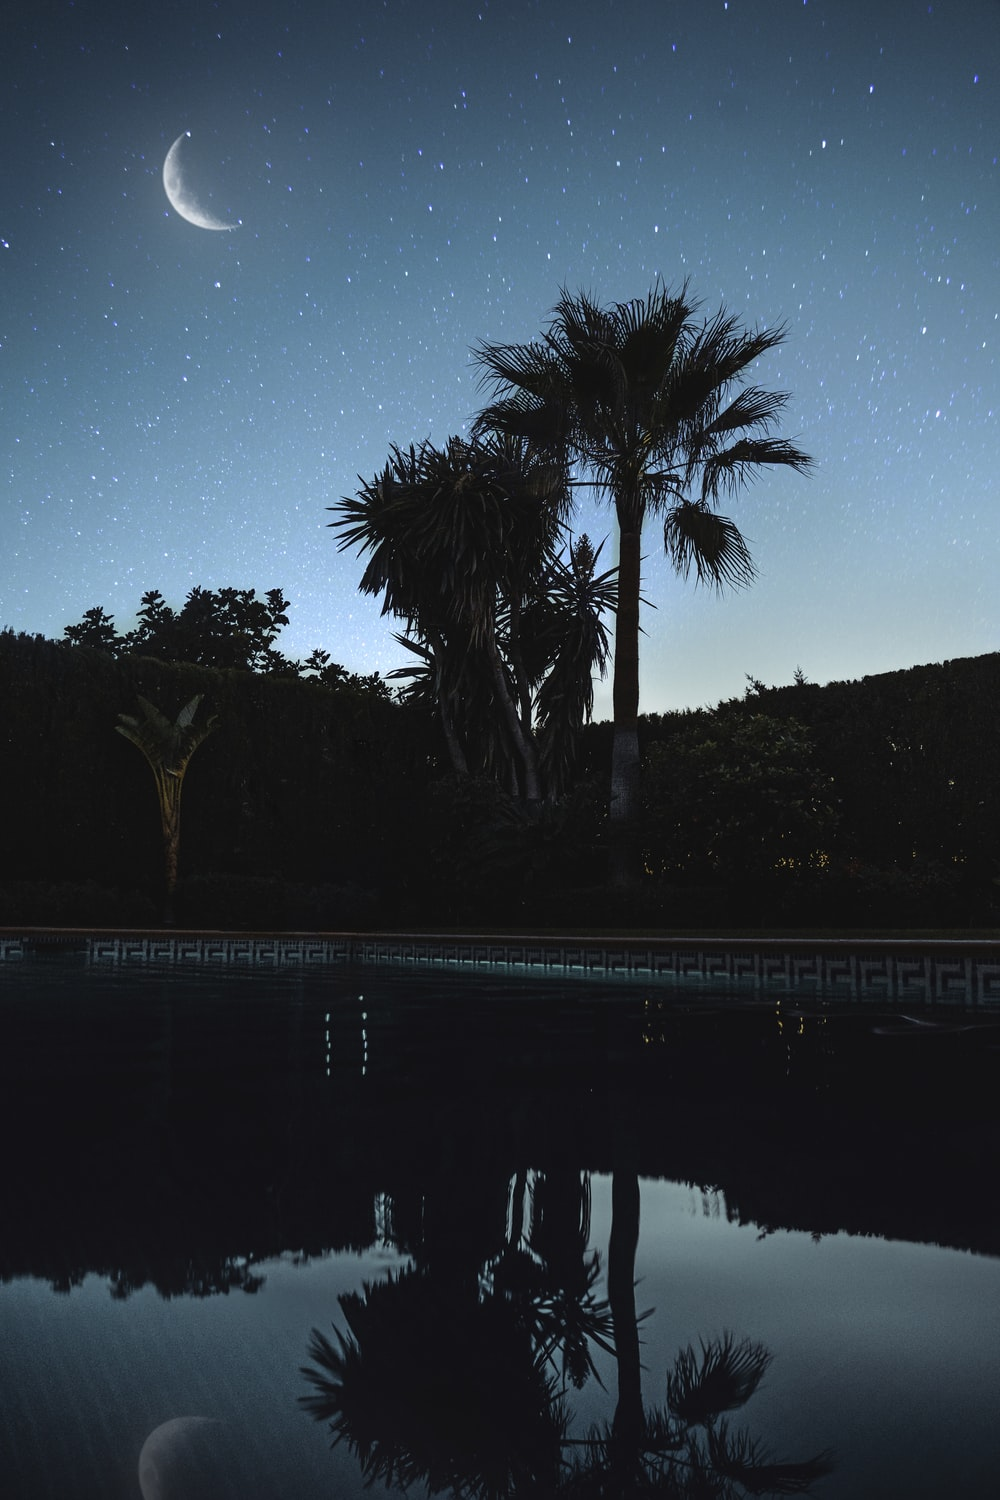 green palm tree near body of water during night time